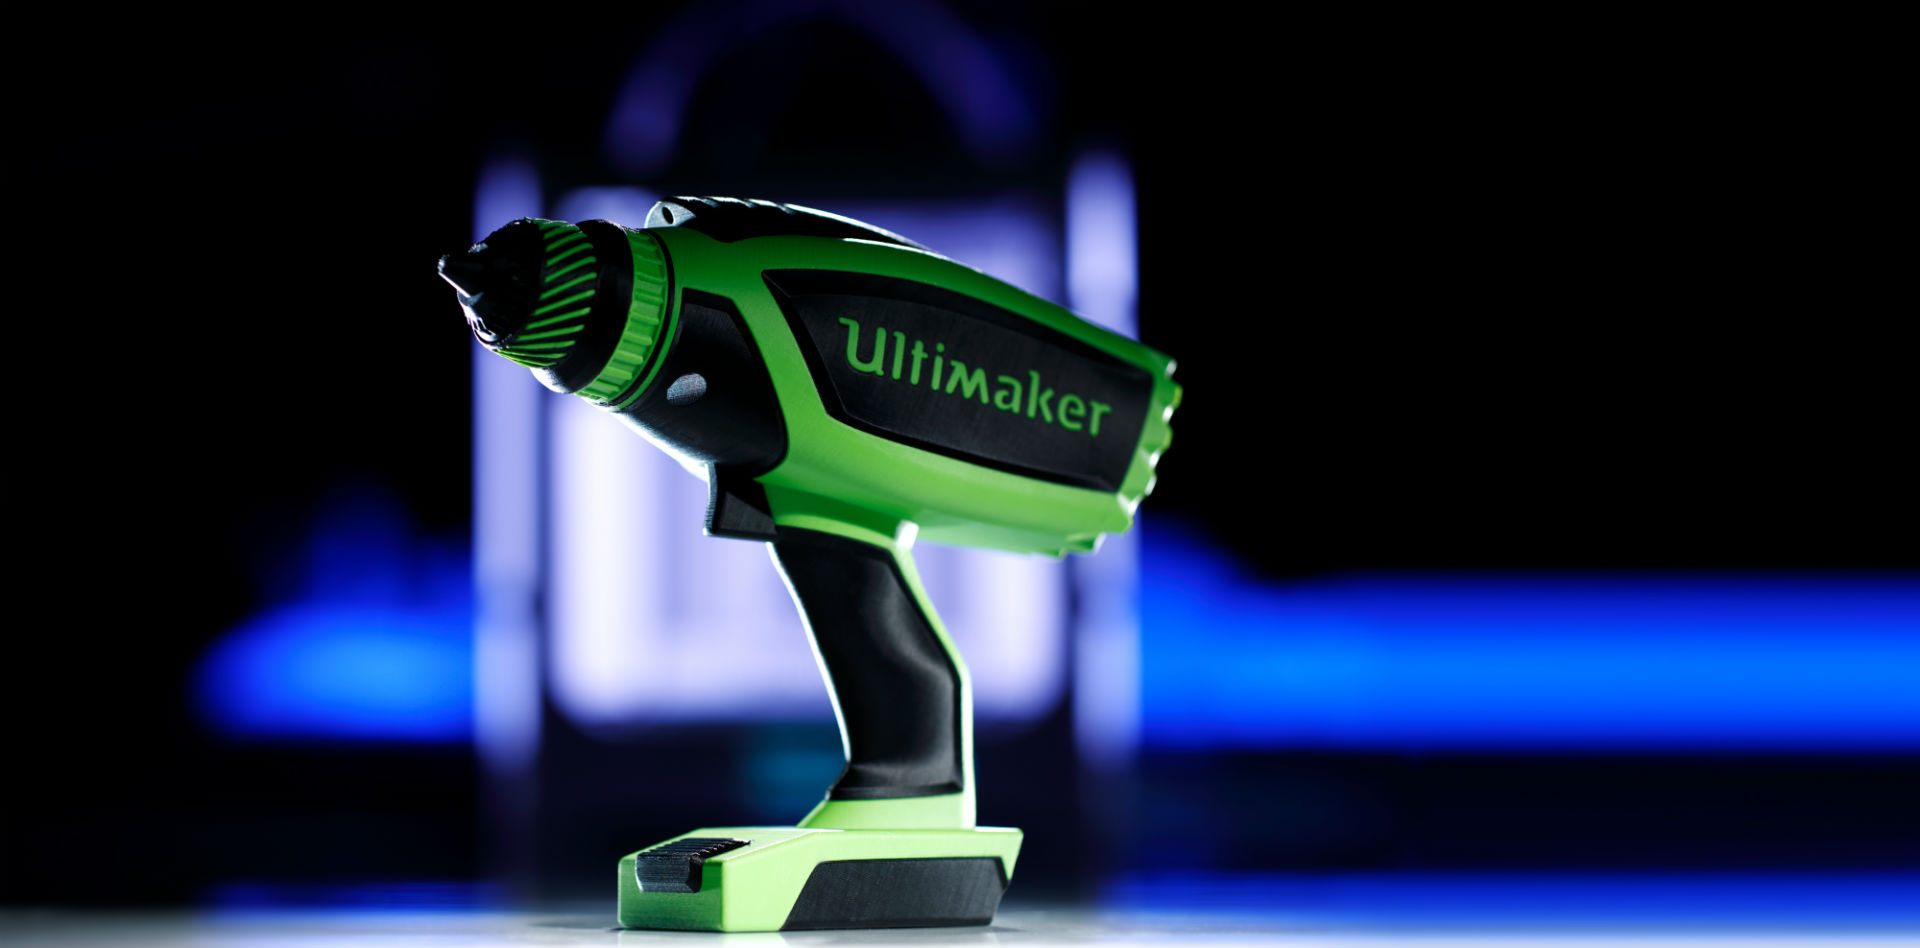 Ultimaker-3-dual-color-drill